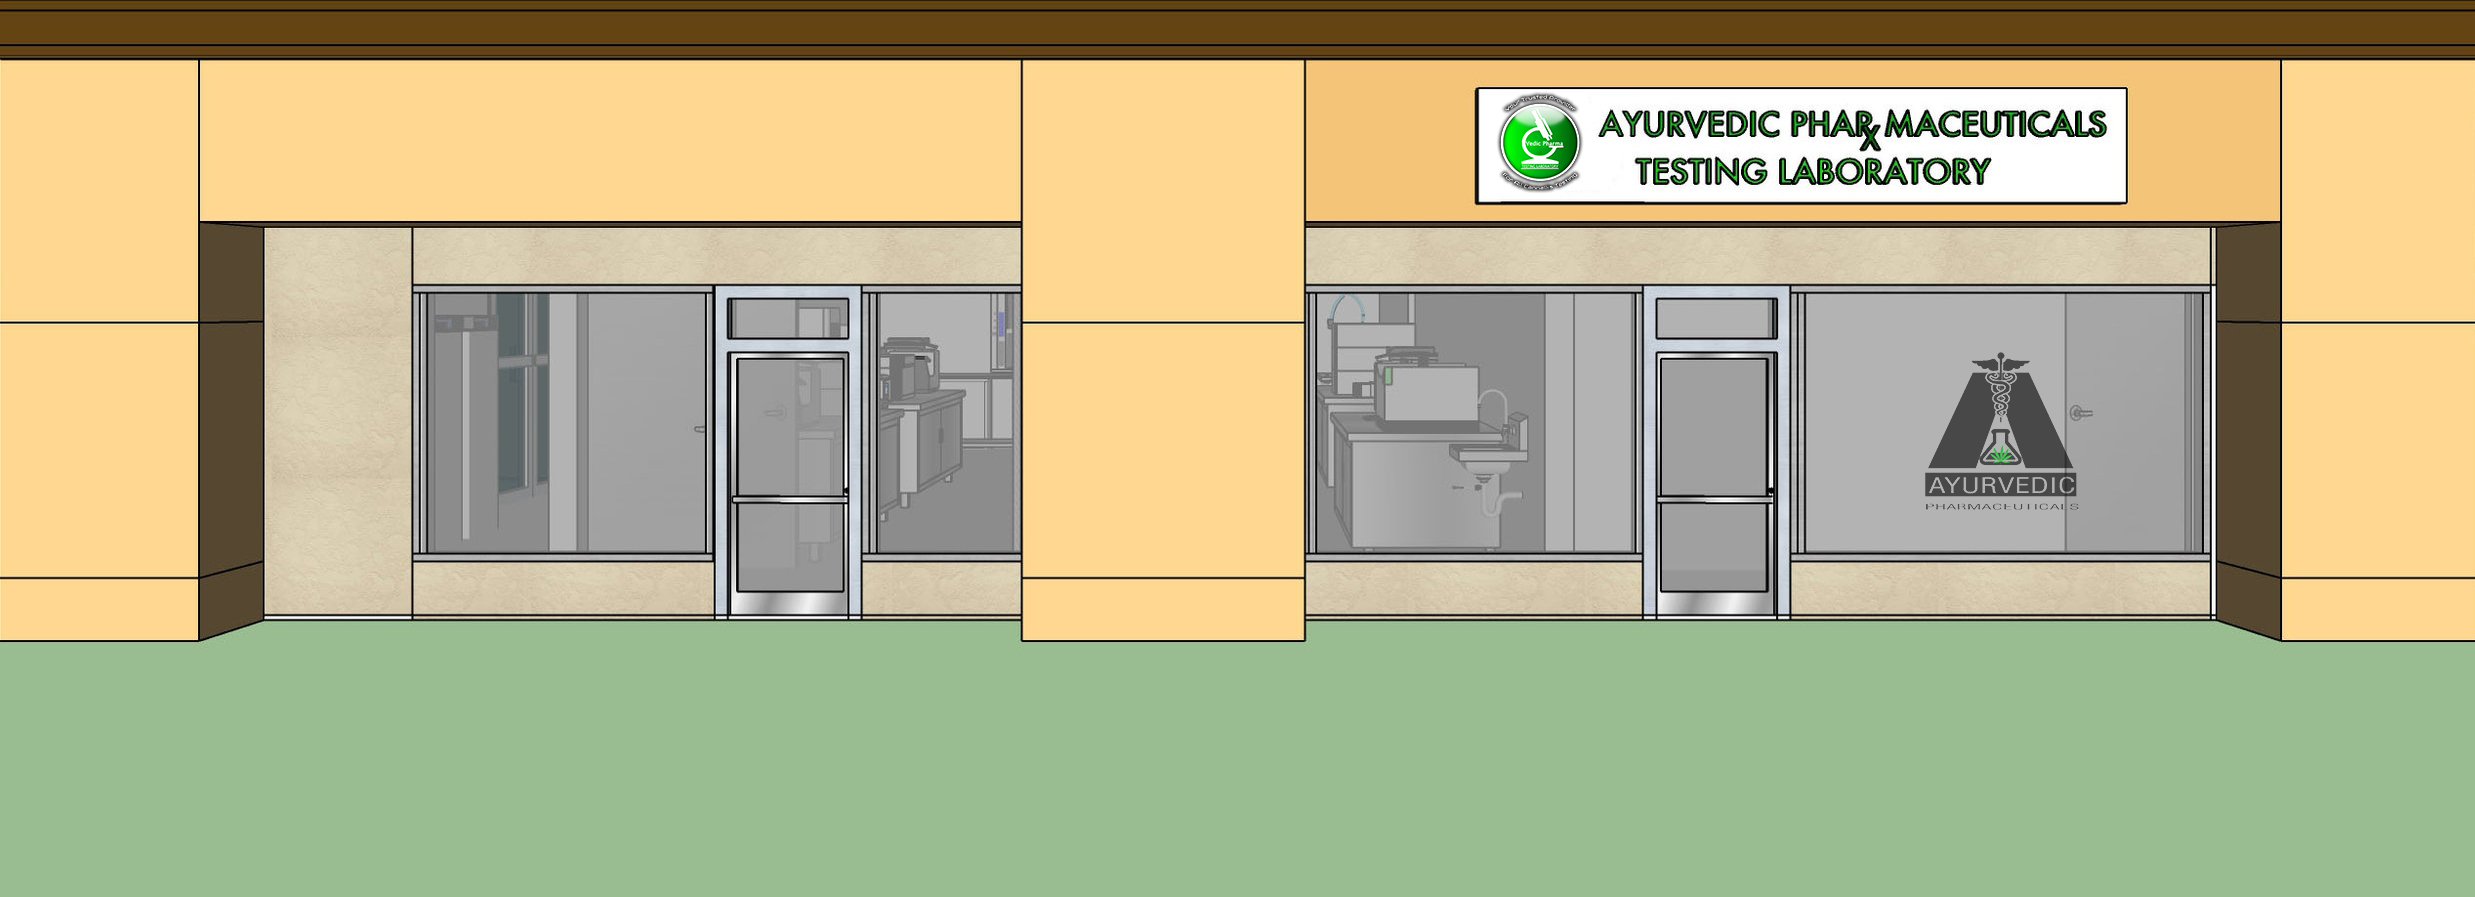 AyurvedicPharmaceuticals_FrontView5.png